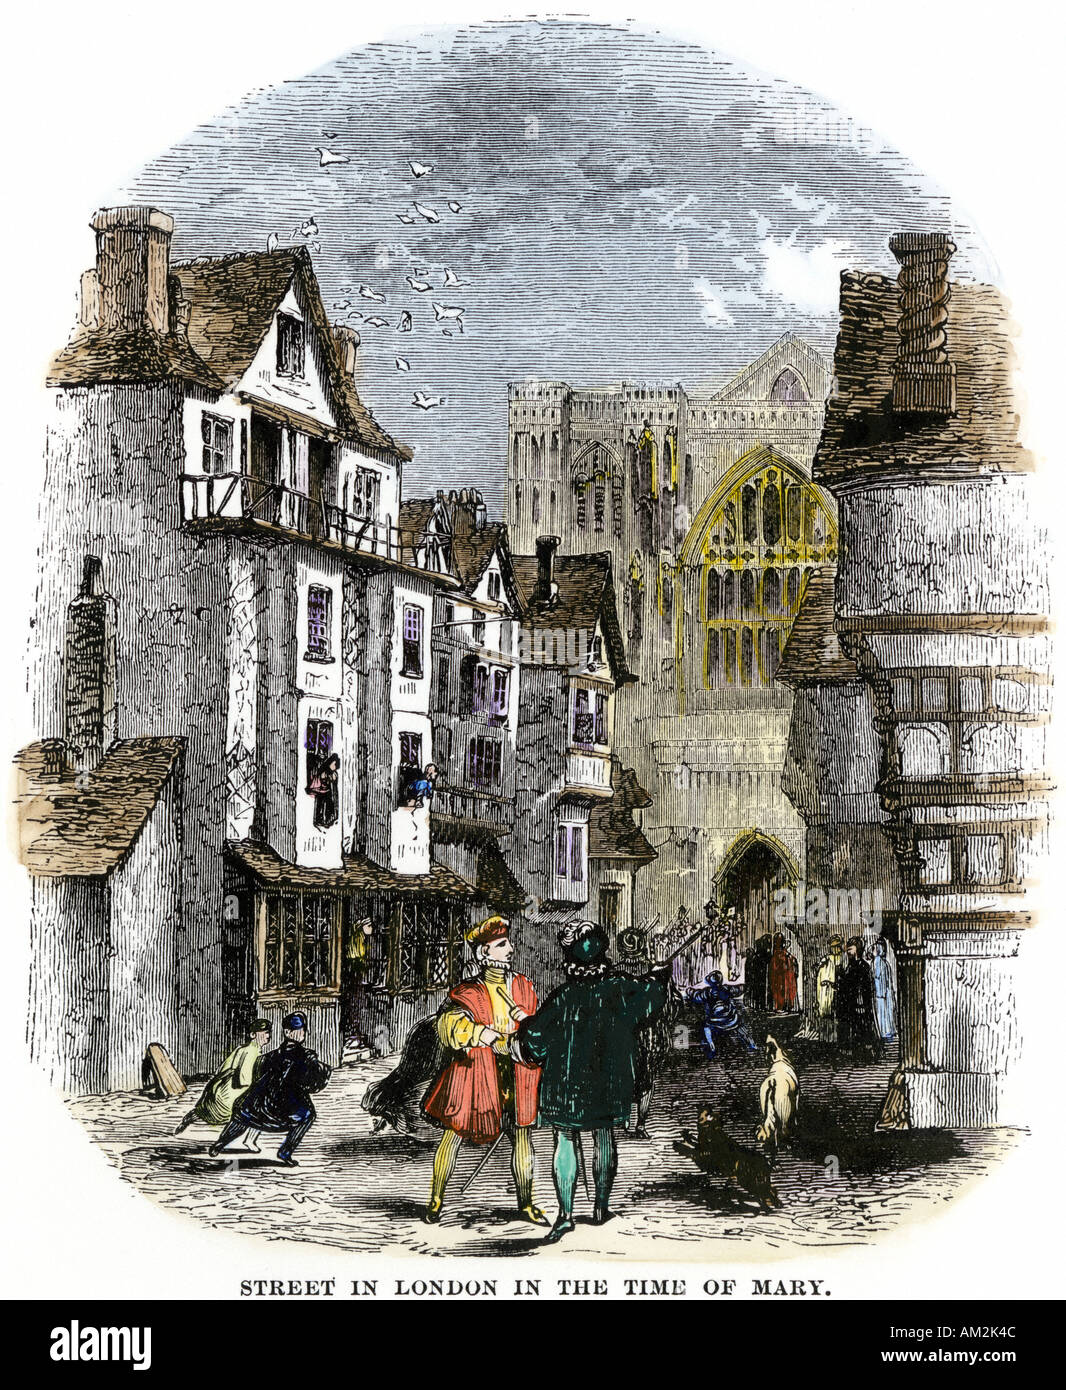 Street in London under Mary Tudor early 1500s. Hand-colored woodcut - Stock Image